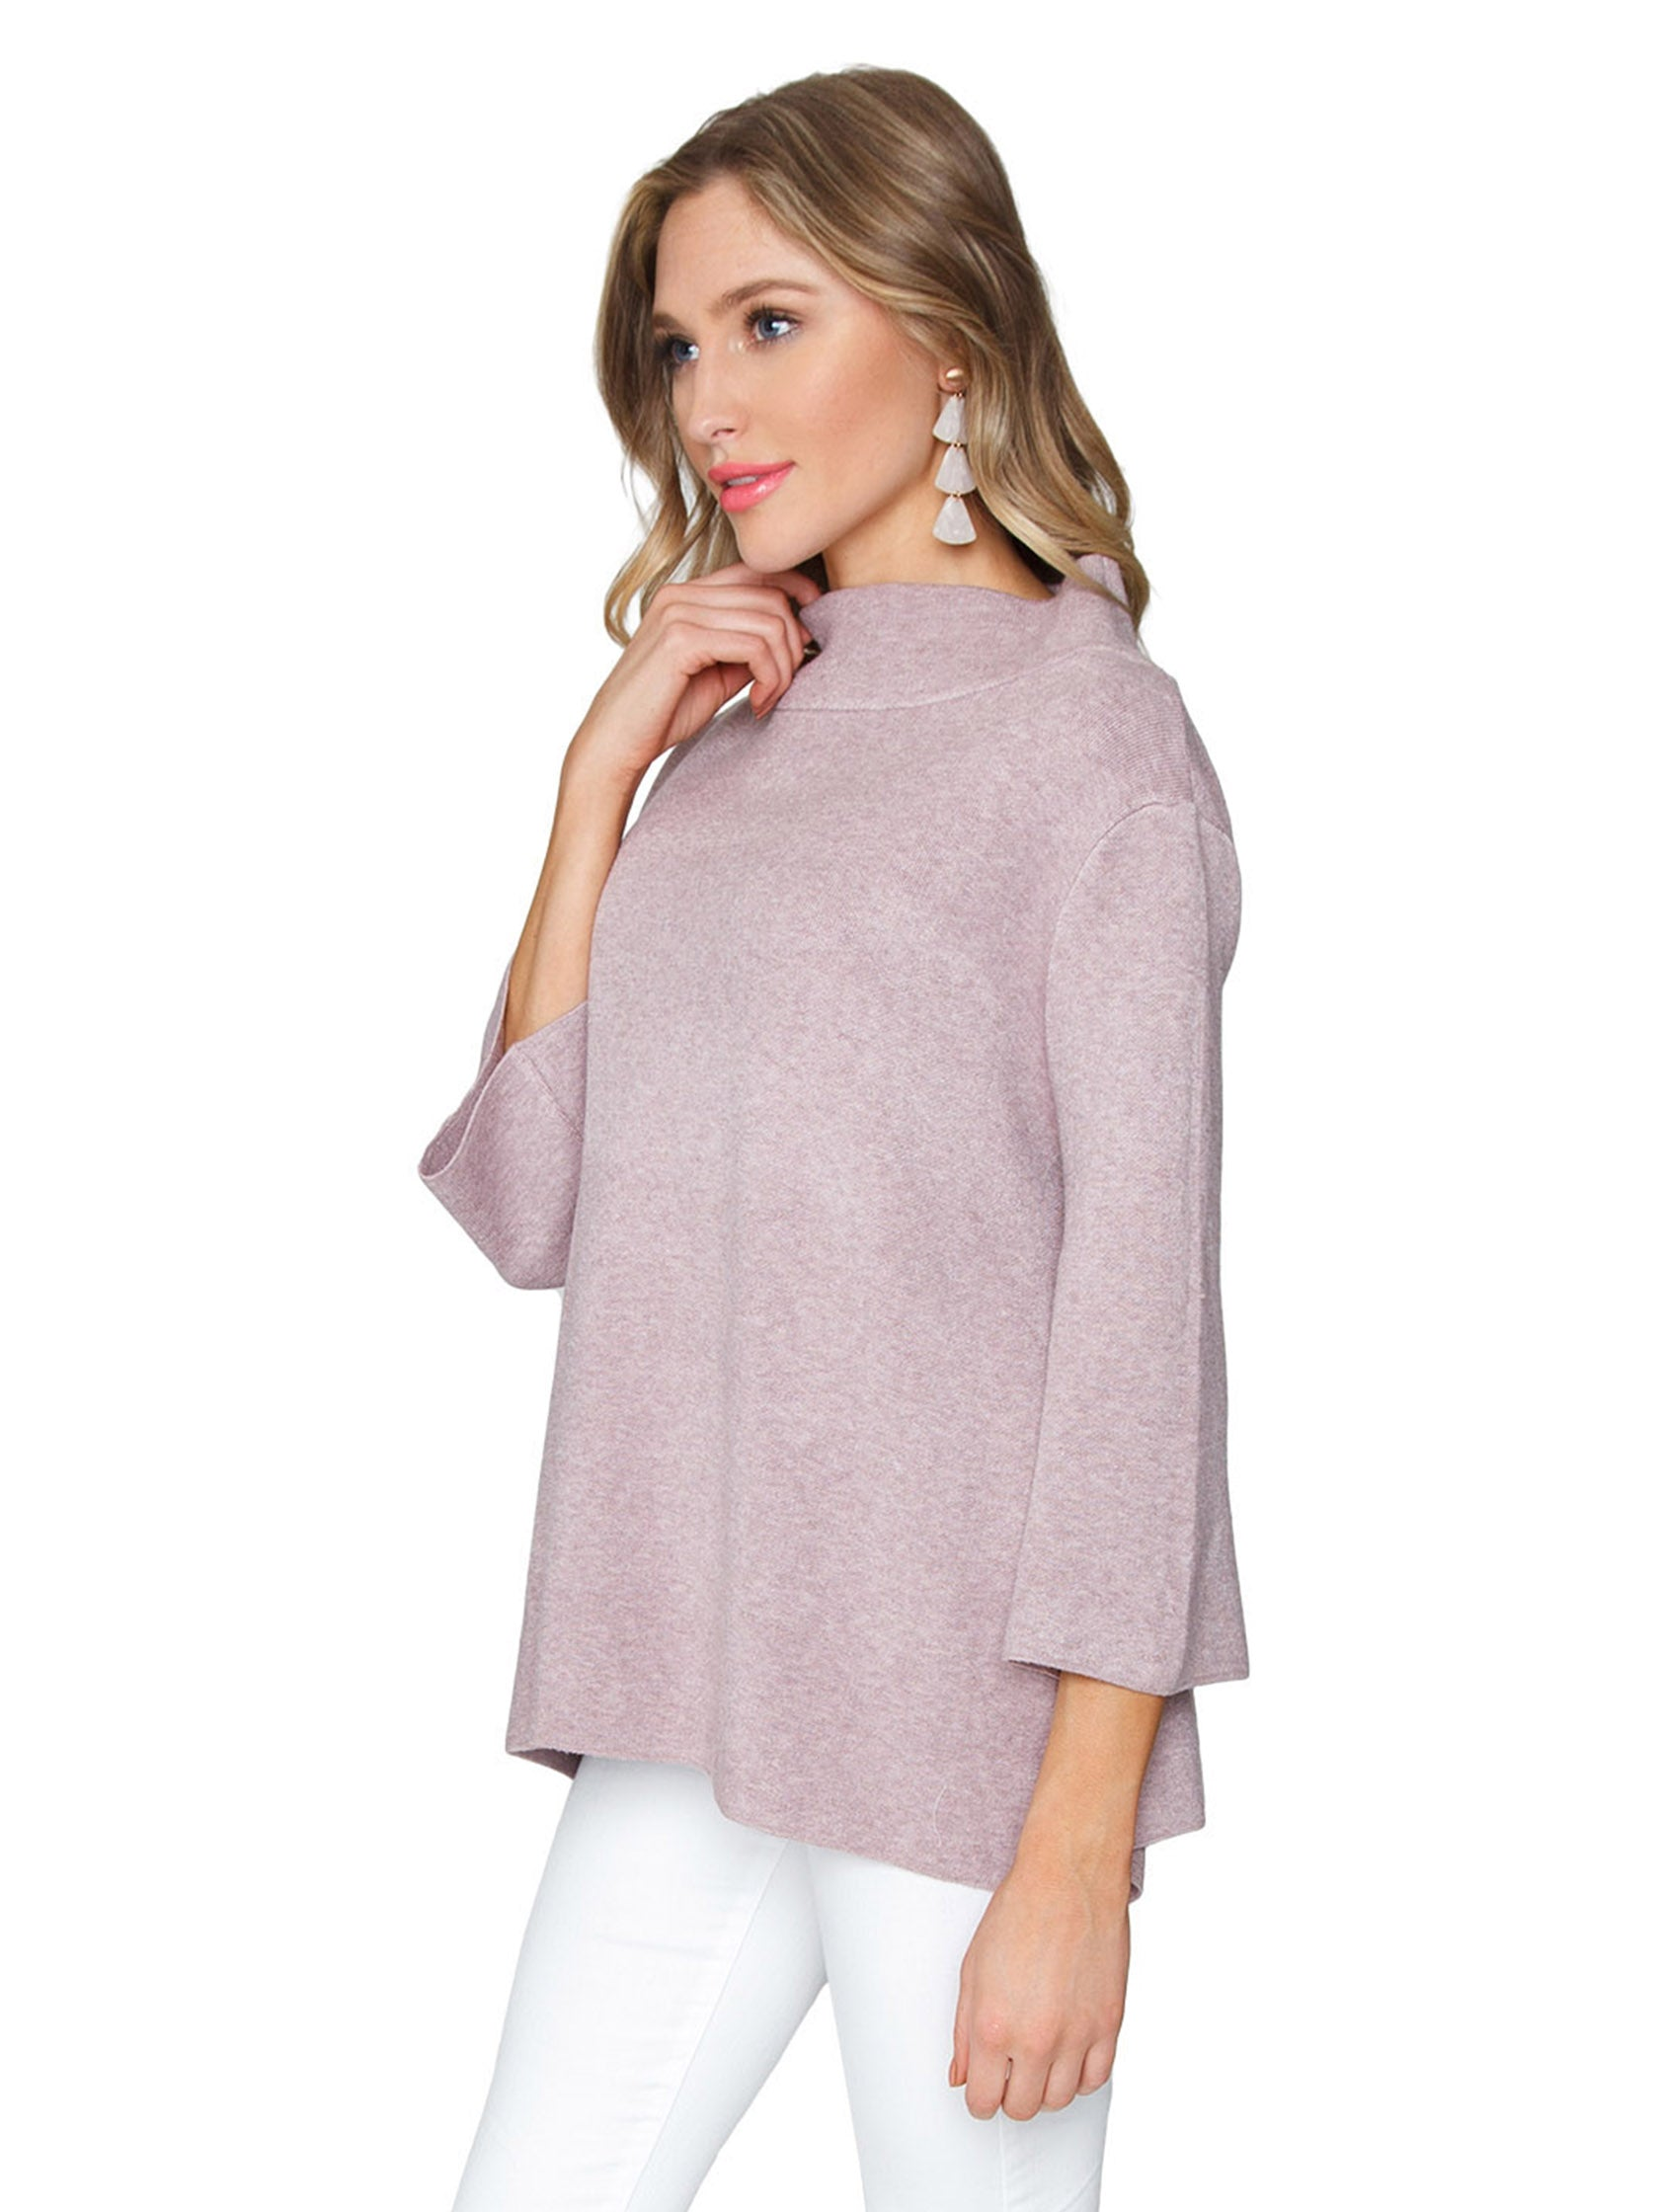 Women wearing a sweater rental from FashionPass called Mock Neck Pullover Sweater